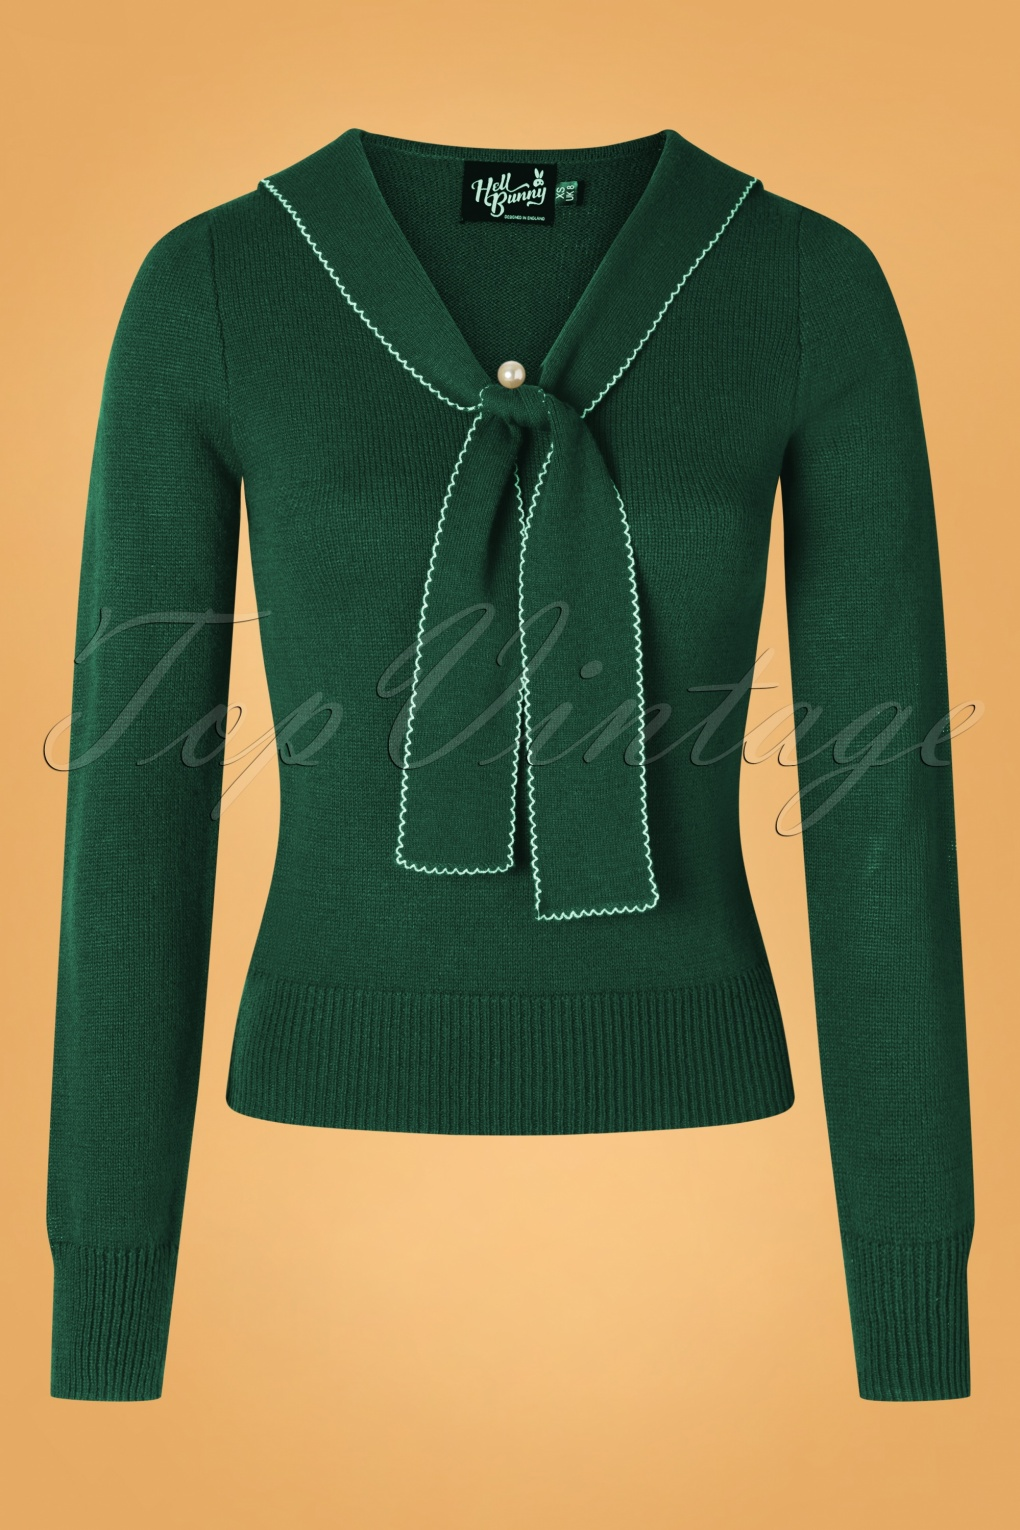 0db041c889daad 1950s Sweaters, 50s Cardigans, 50s Jumpers 40s Connie Jumper in Dark Green   35.87